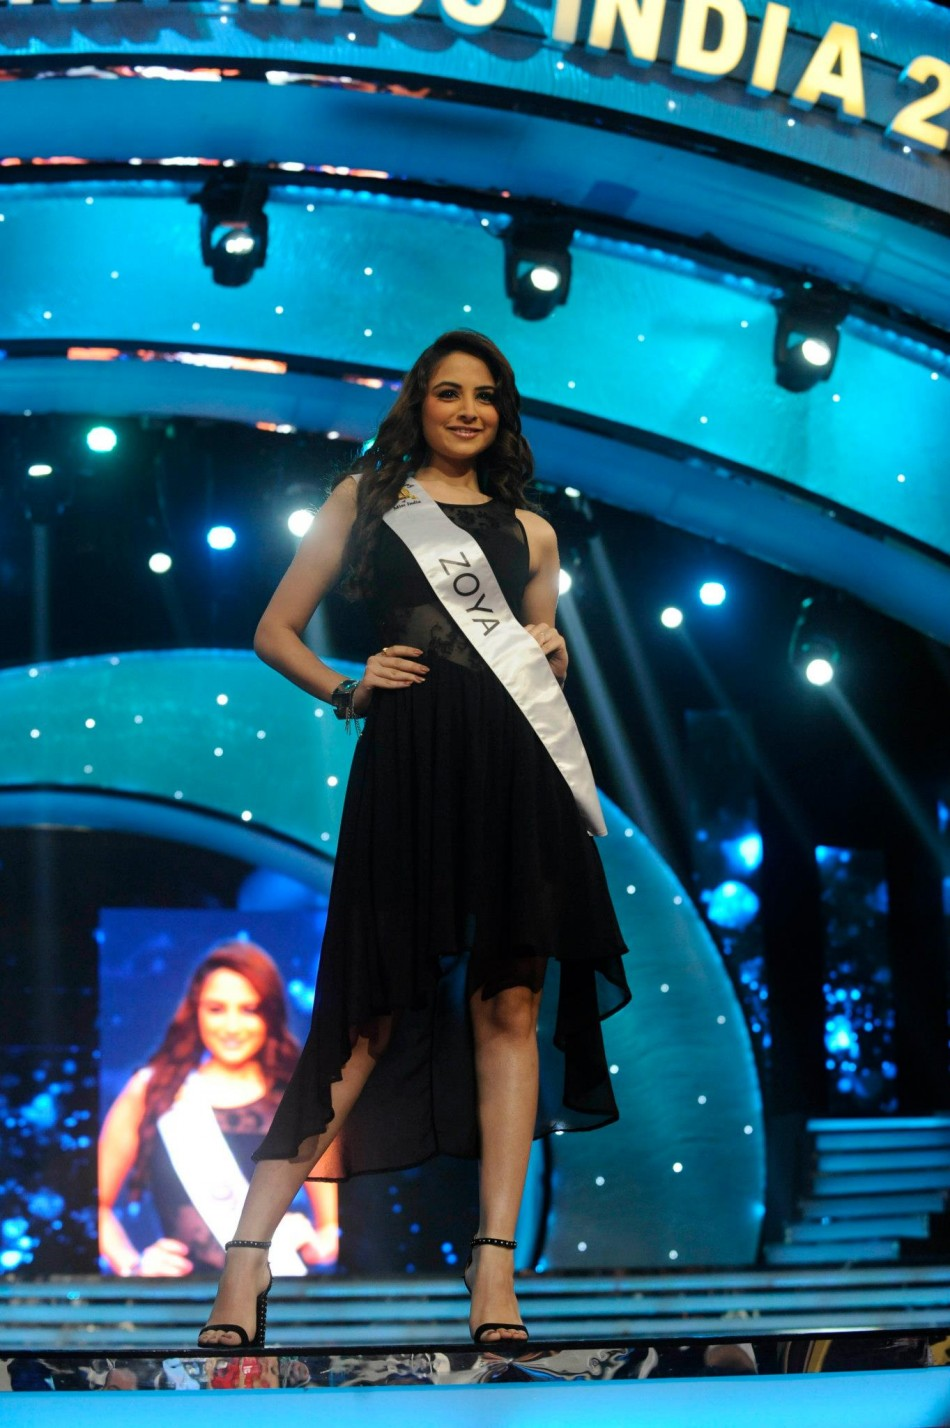 Zoya Afroz was the second runner-up